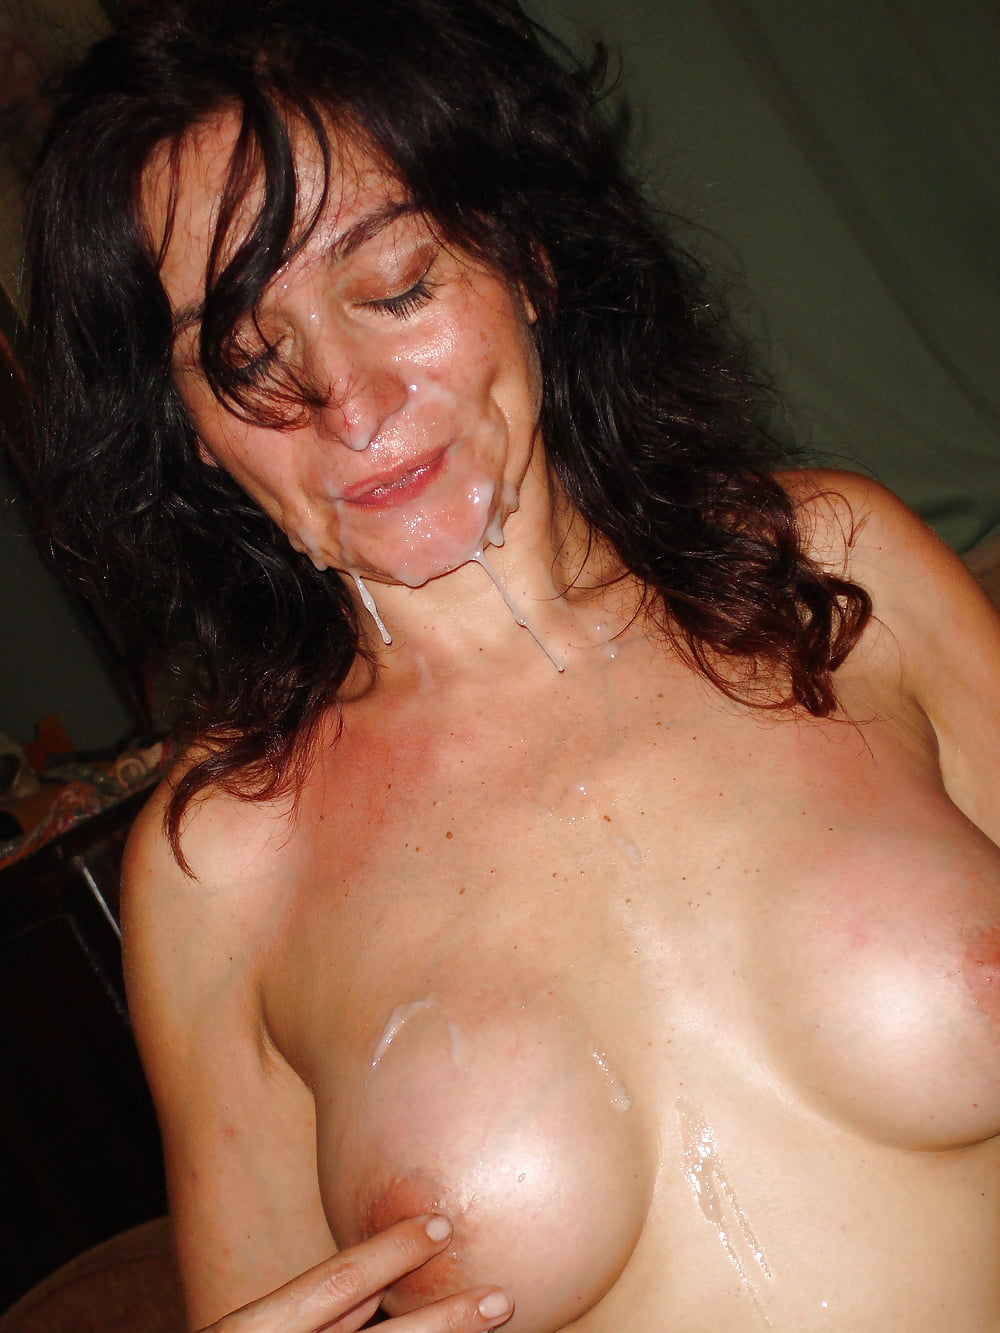 Naked milfs with sperm on them with